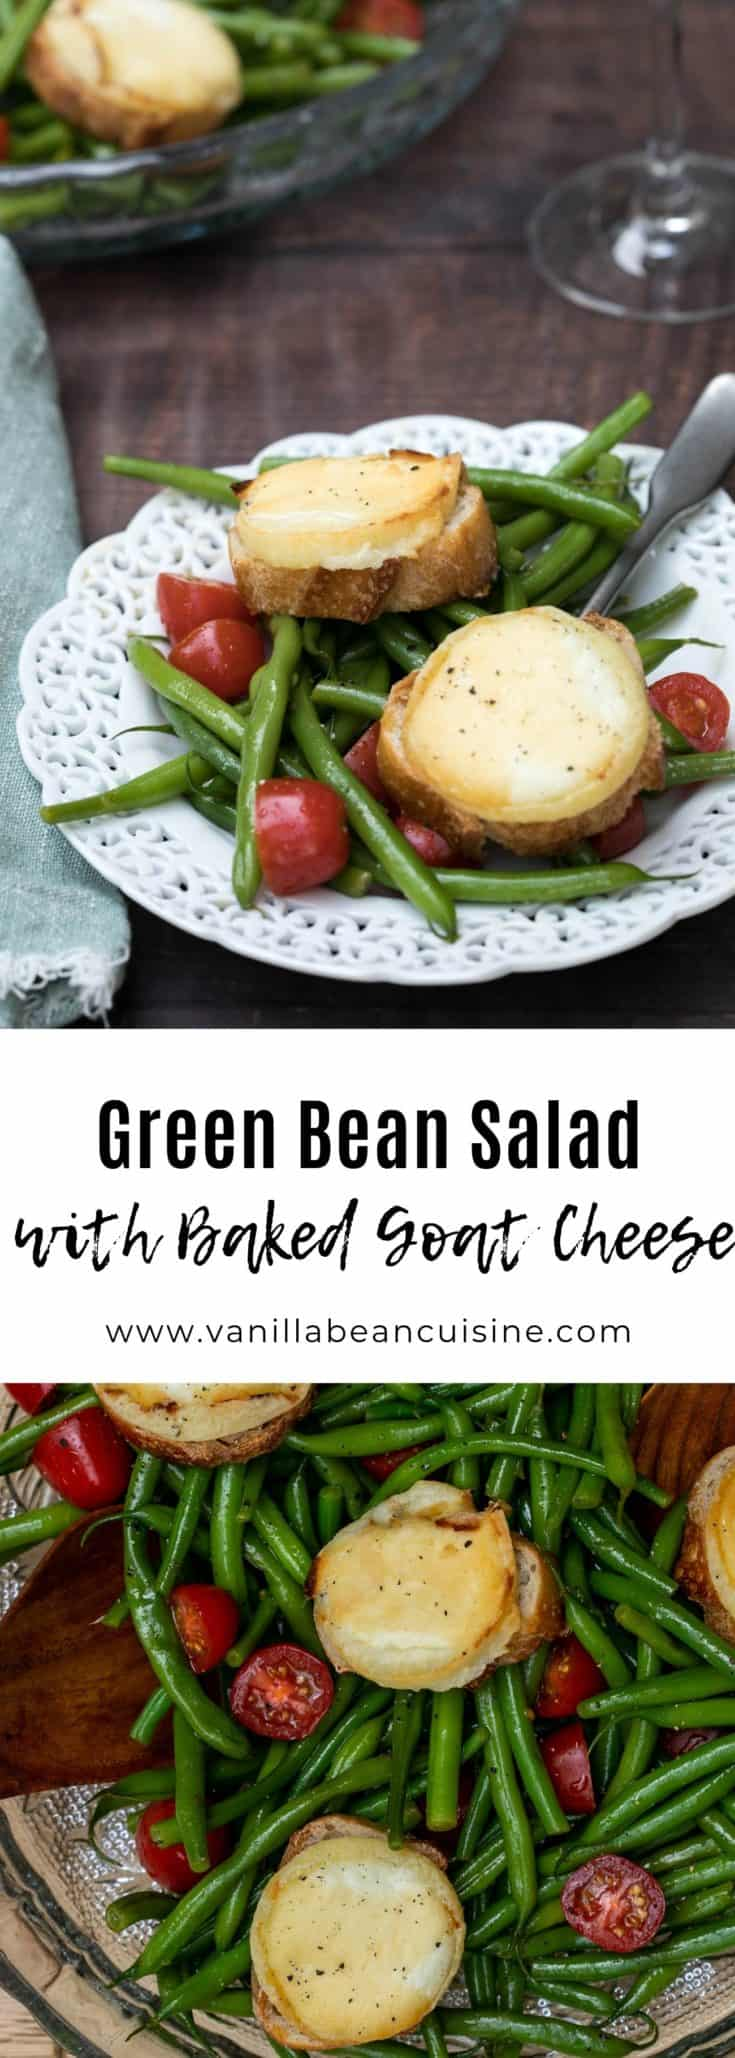 This green bean salad combines green beans and tomatoes in a cider vinaigrette, topped with baked goat cheese toasts. Healthy, delicious, and decadent! #vegetarian #greenbeansalad #salad #vanillabeancuisine #goatcheese